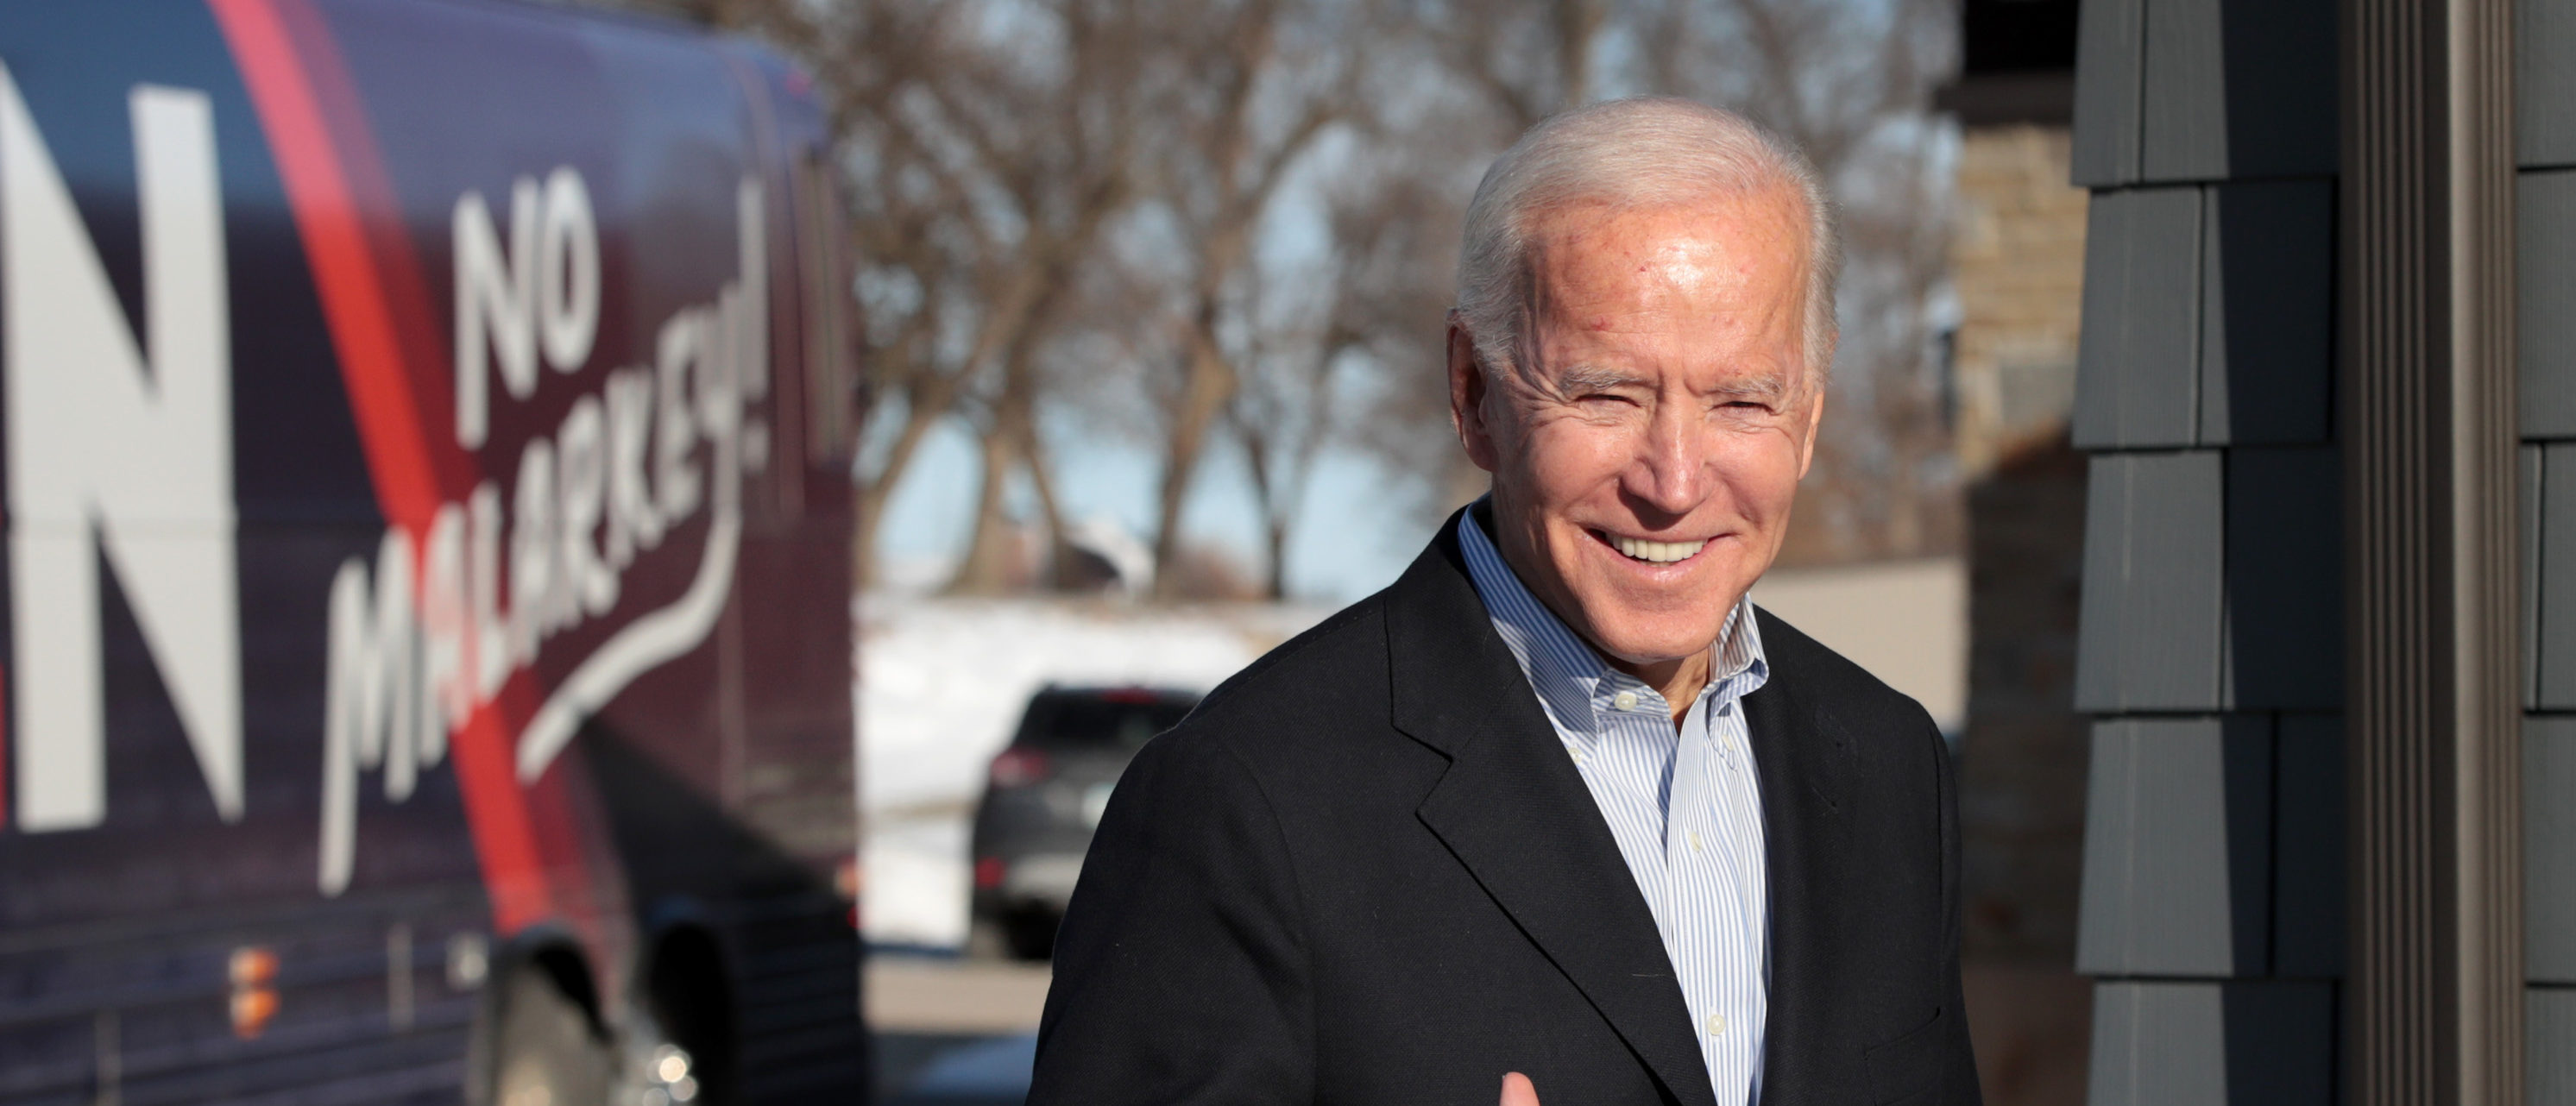 Democratic presidential candidate, former Vice President Joe Biden arrives at a campaign stop on Dec. 2, 2019 in Emmetsburg, Iowa. (Scott Olson/Getty Images)